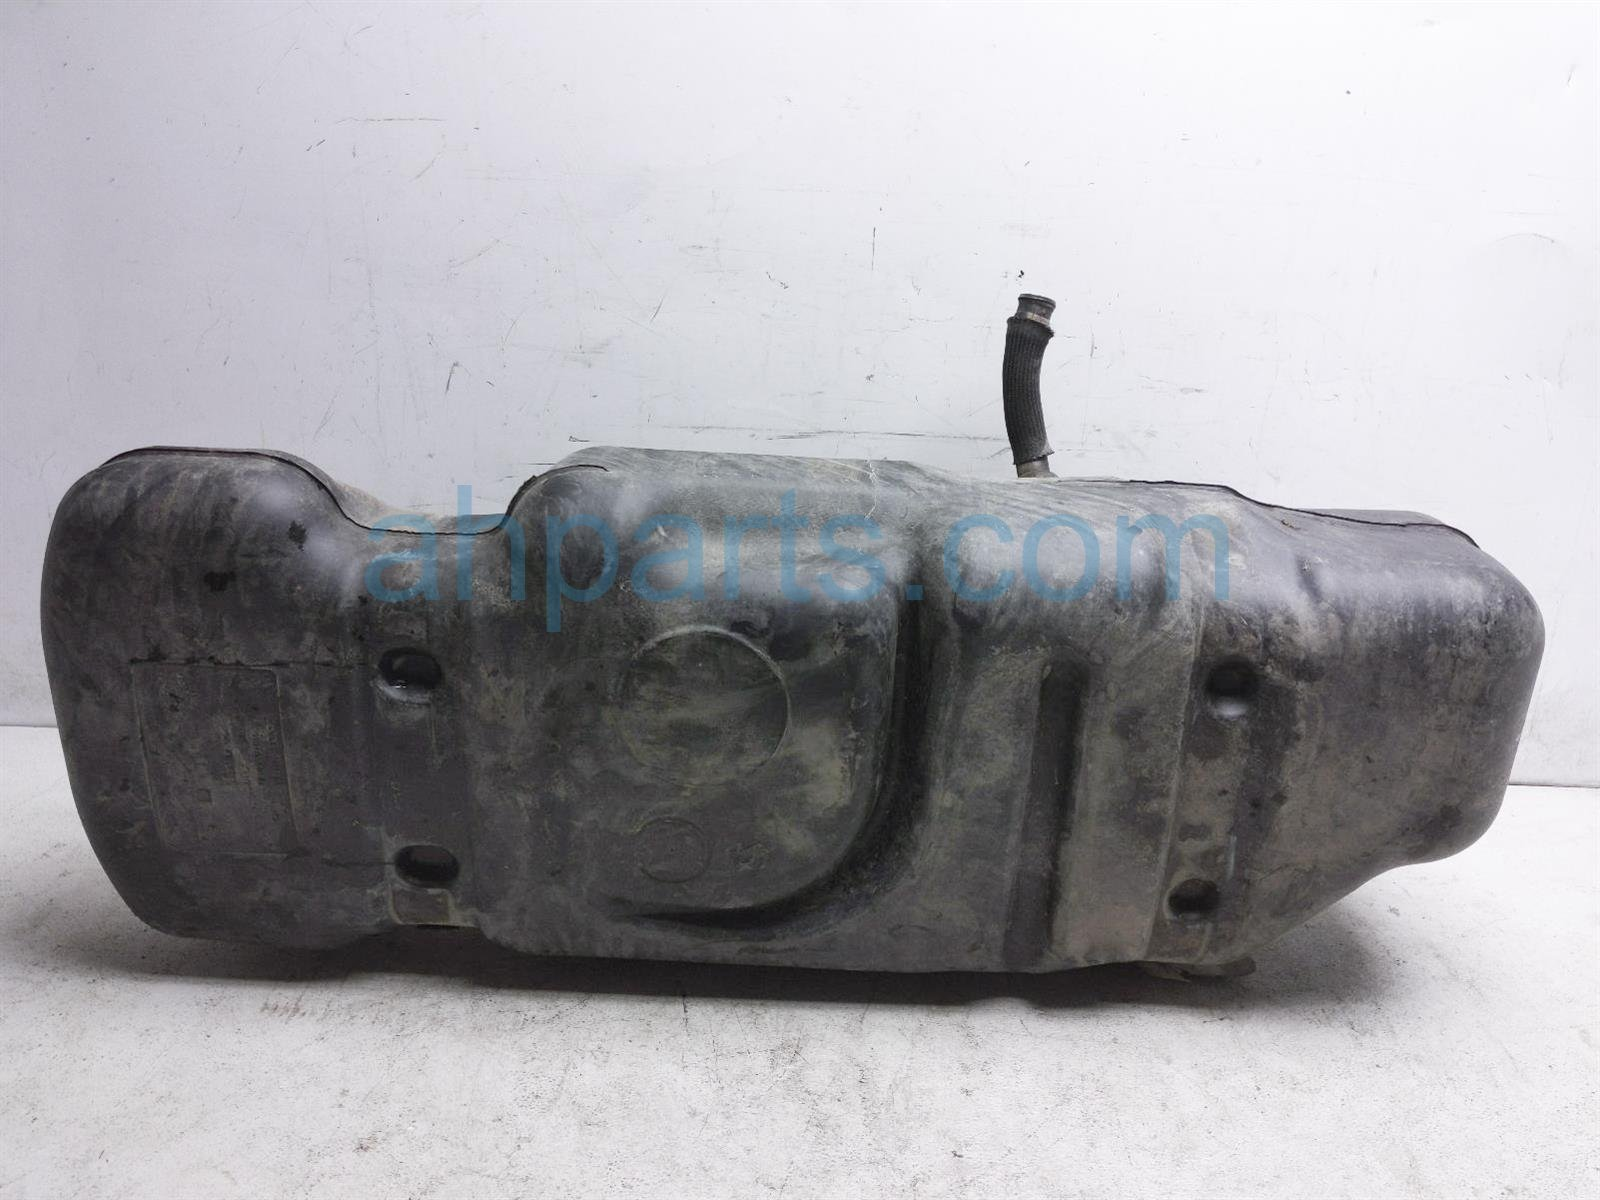 2017 Toyota Tacoma Gas / Fuel Tank 77001 04201 Replacement